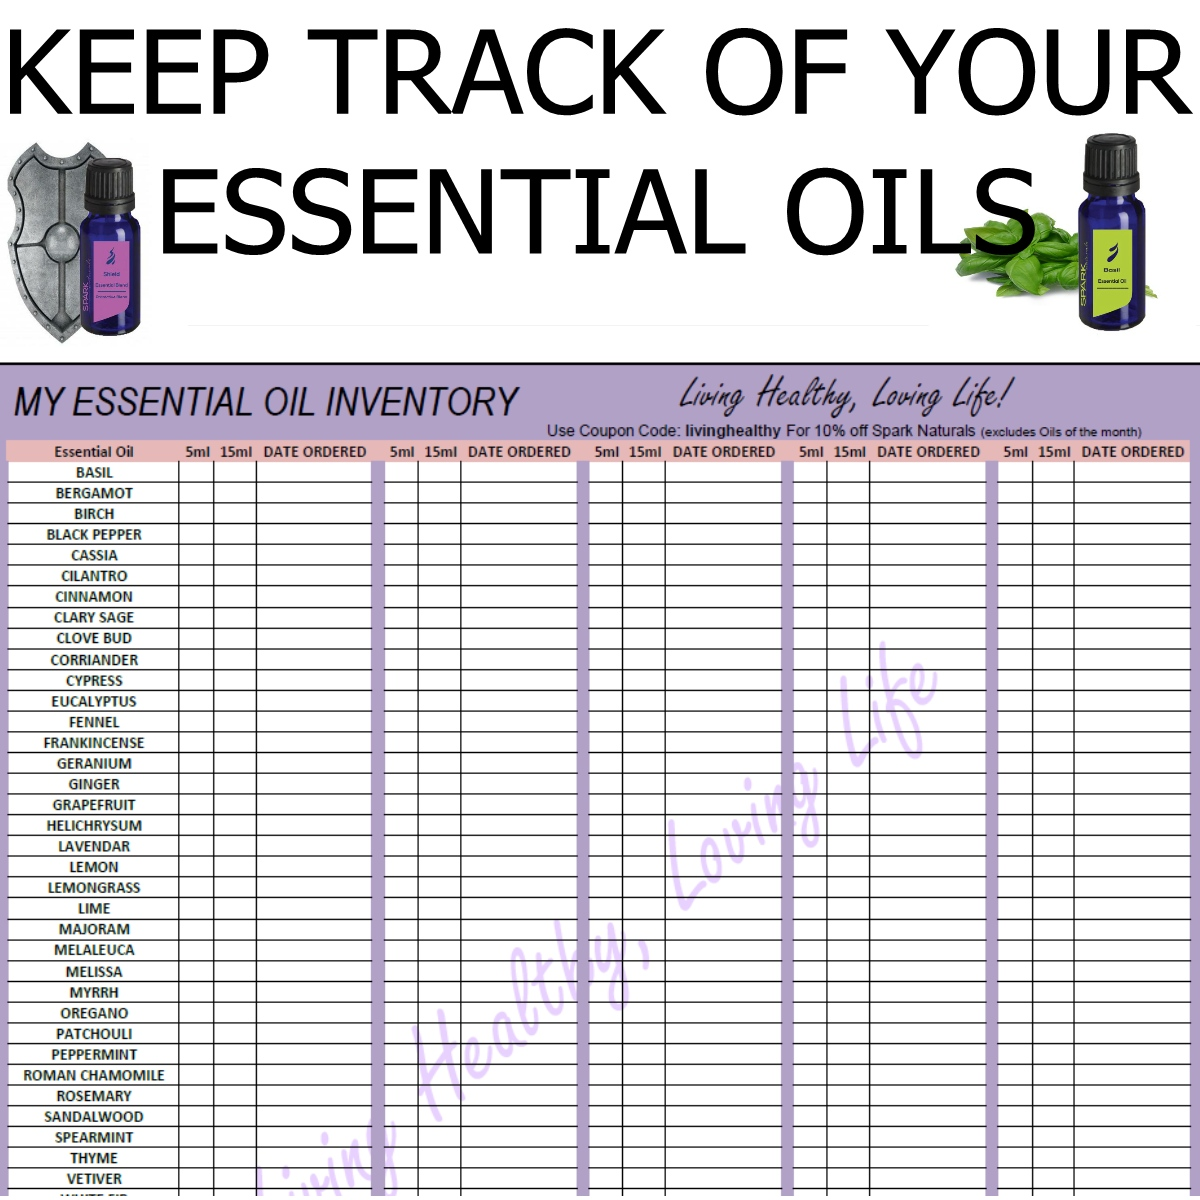 Gutsy image with regard to essential oils chart printable